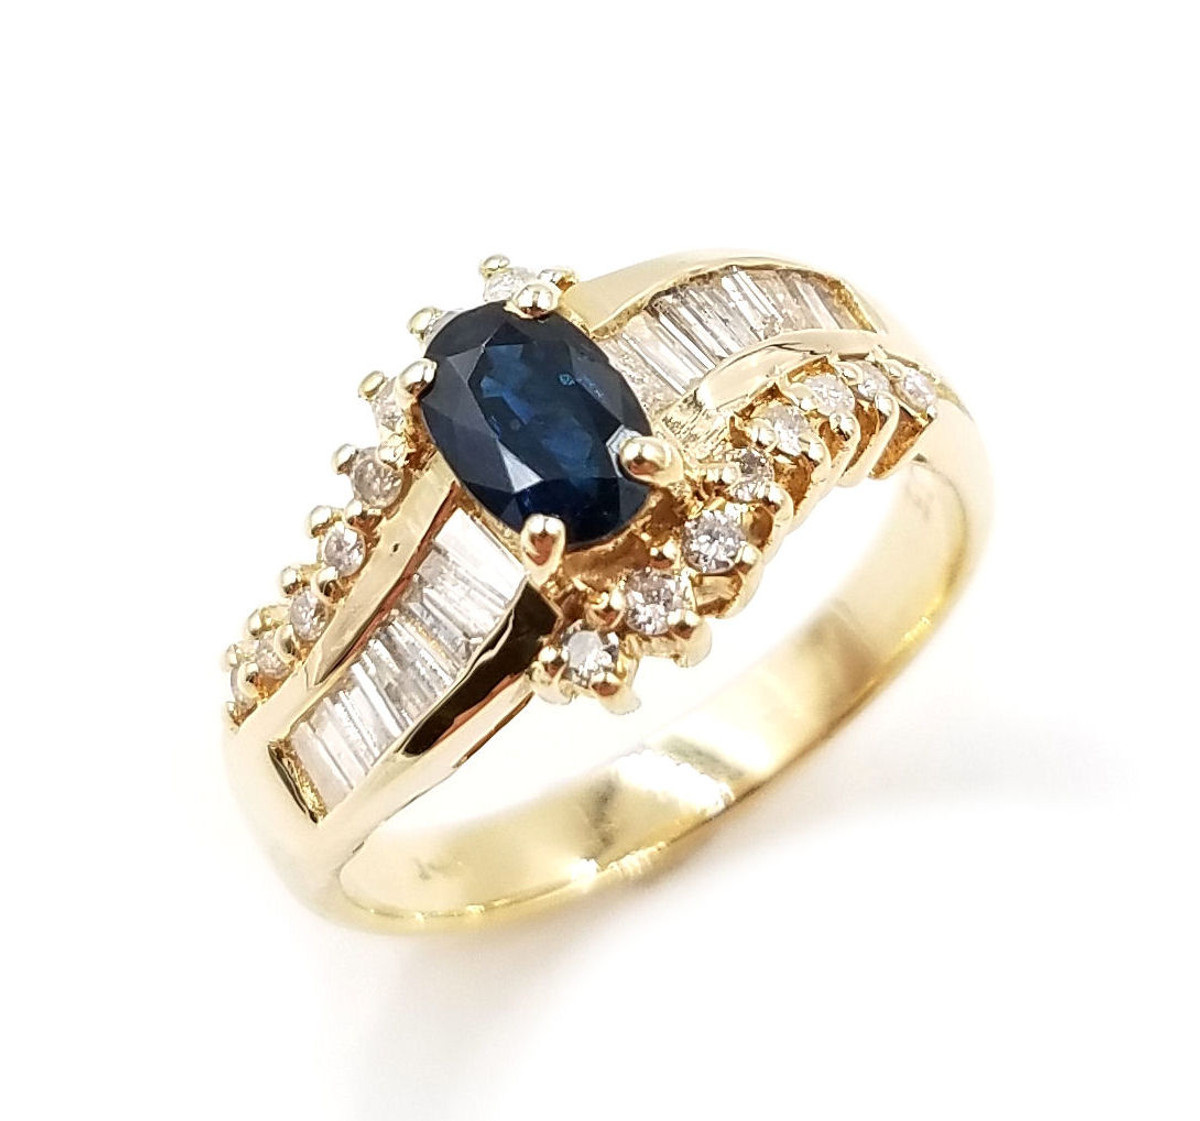 Diamond & Oval Genuine Blue Sapphire Ring